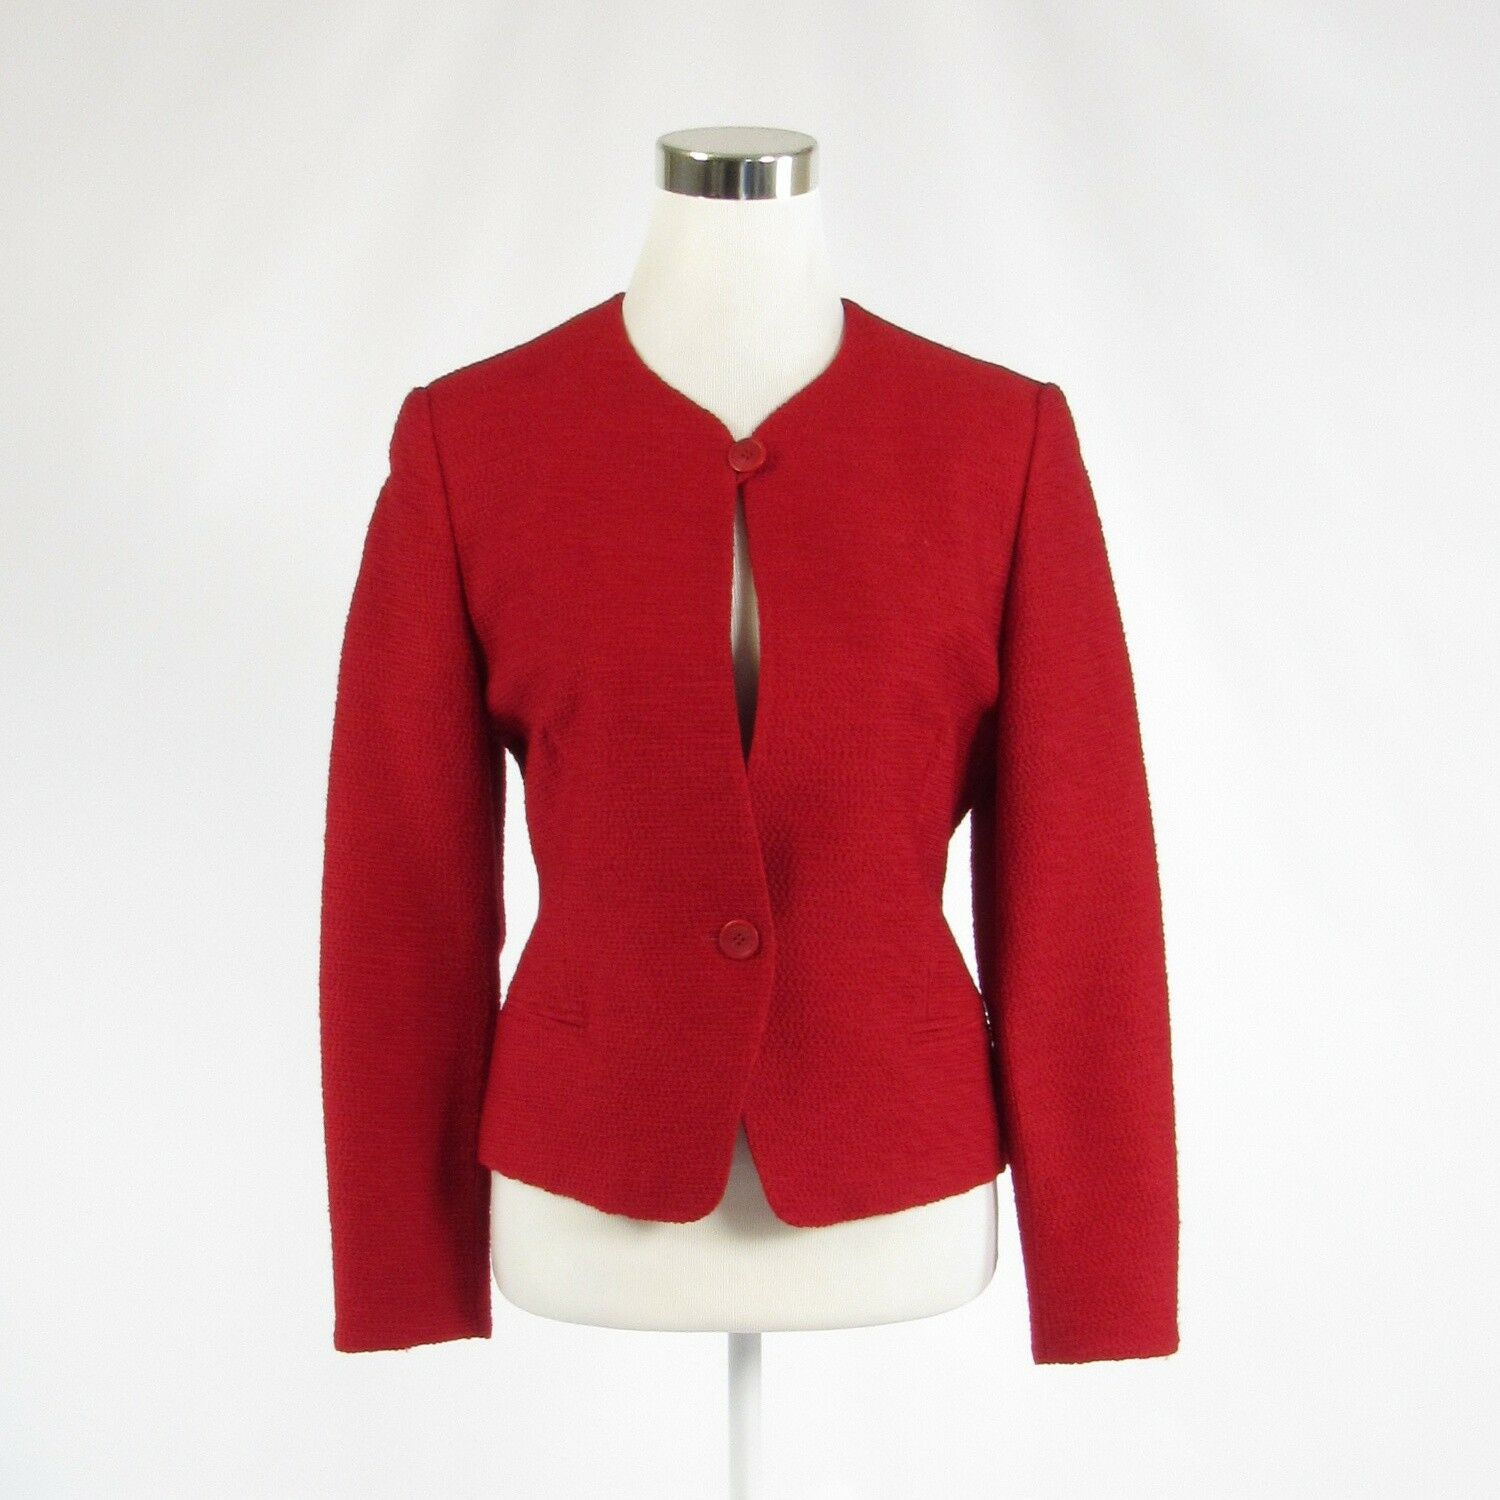 Red tweed CERRUTI 1881 long sleeve jacket 6 40-Newish